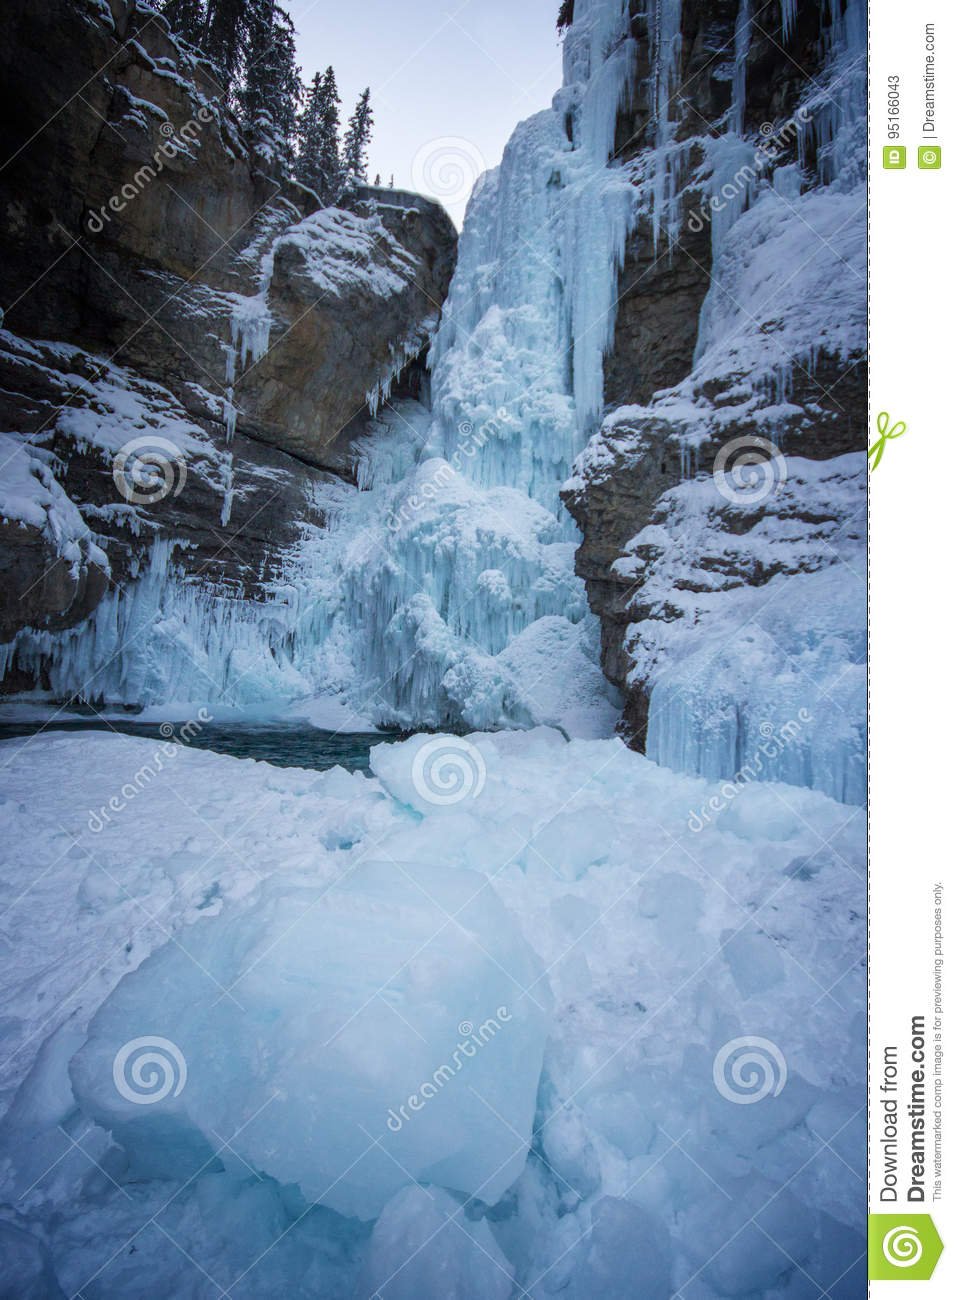 Long frozen waterfall with icy walls of canyon and big piece of ice in front, Johnston canyon, Banff national park, Canada